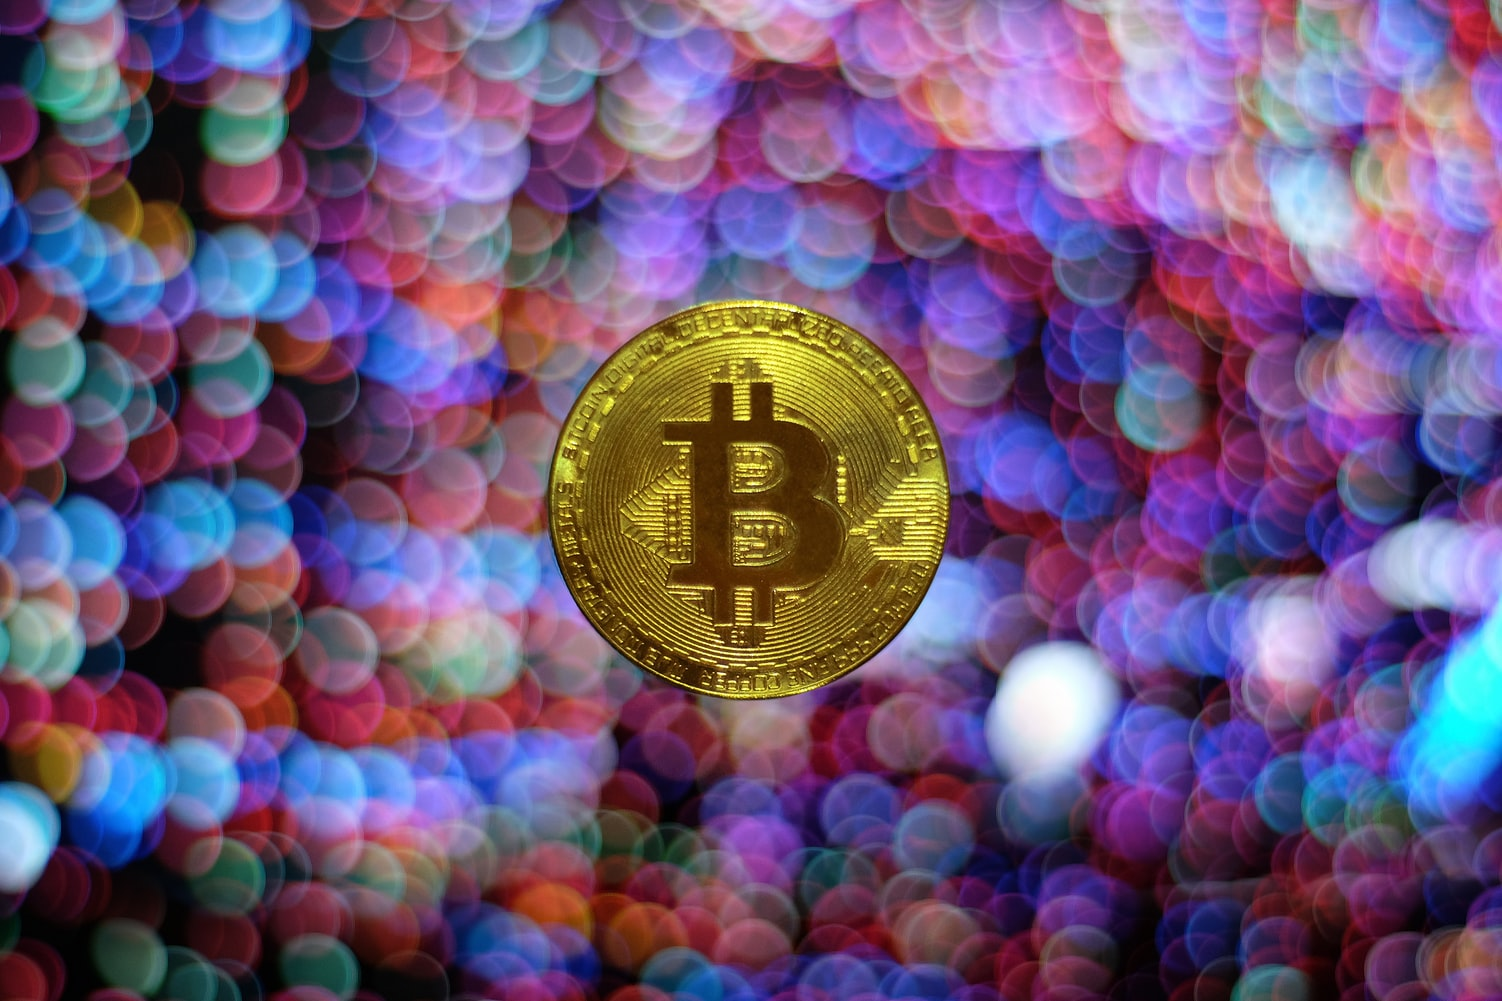 Bitcoin Is Being Pulled in Different Directions by the Coronavirus and Easy Money